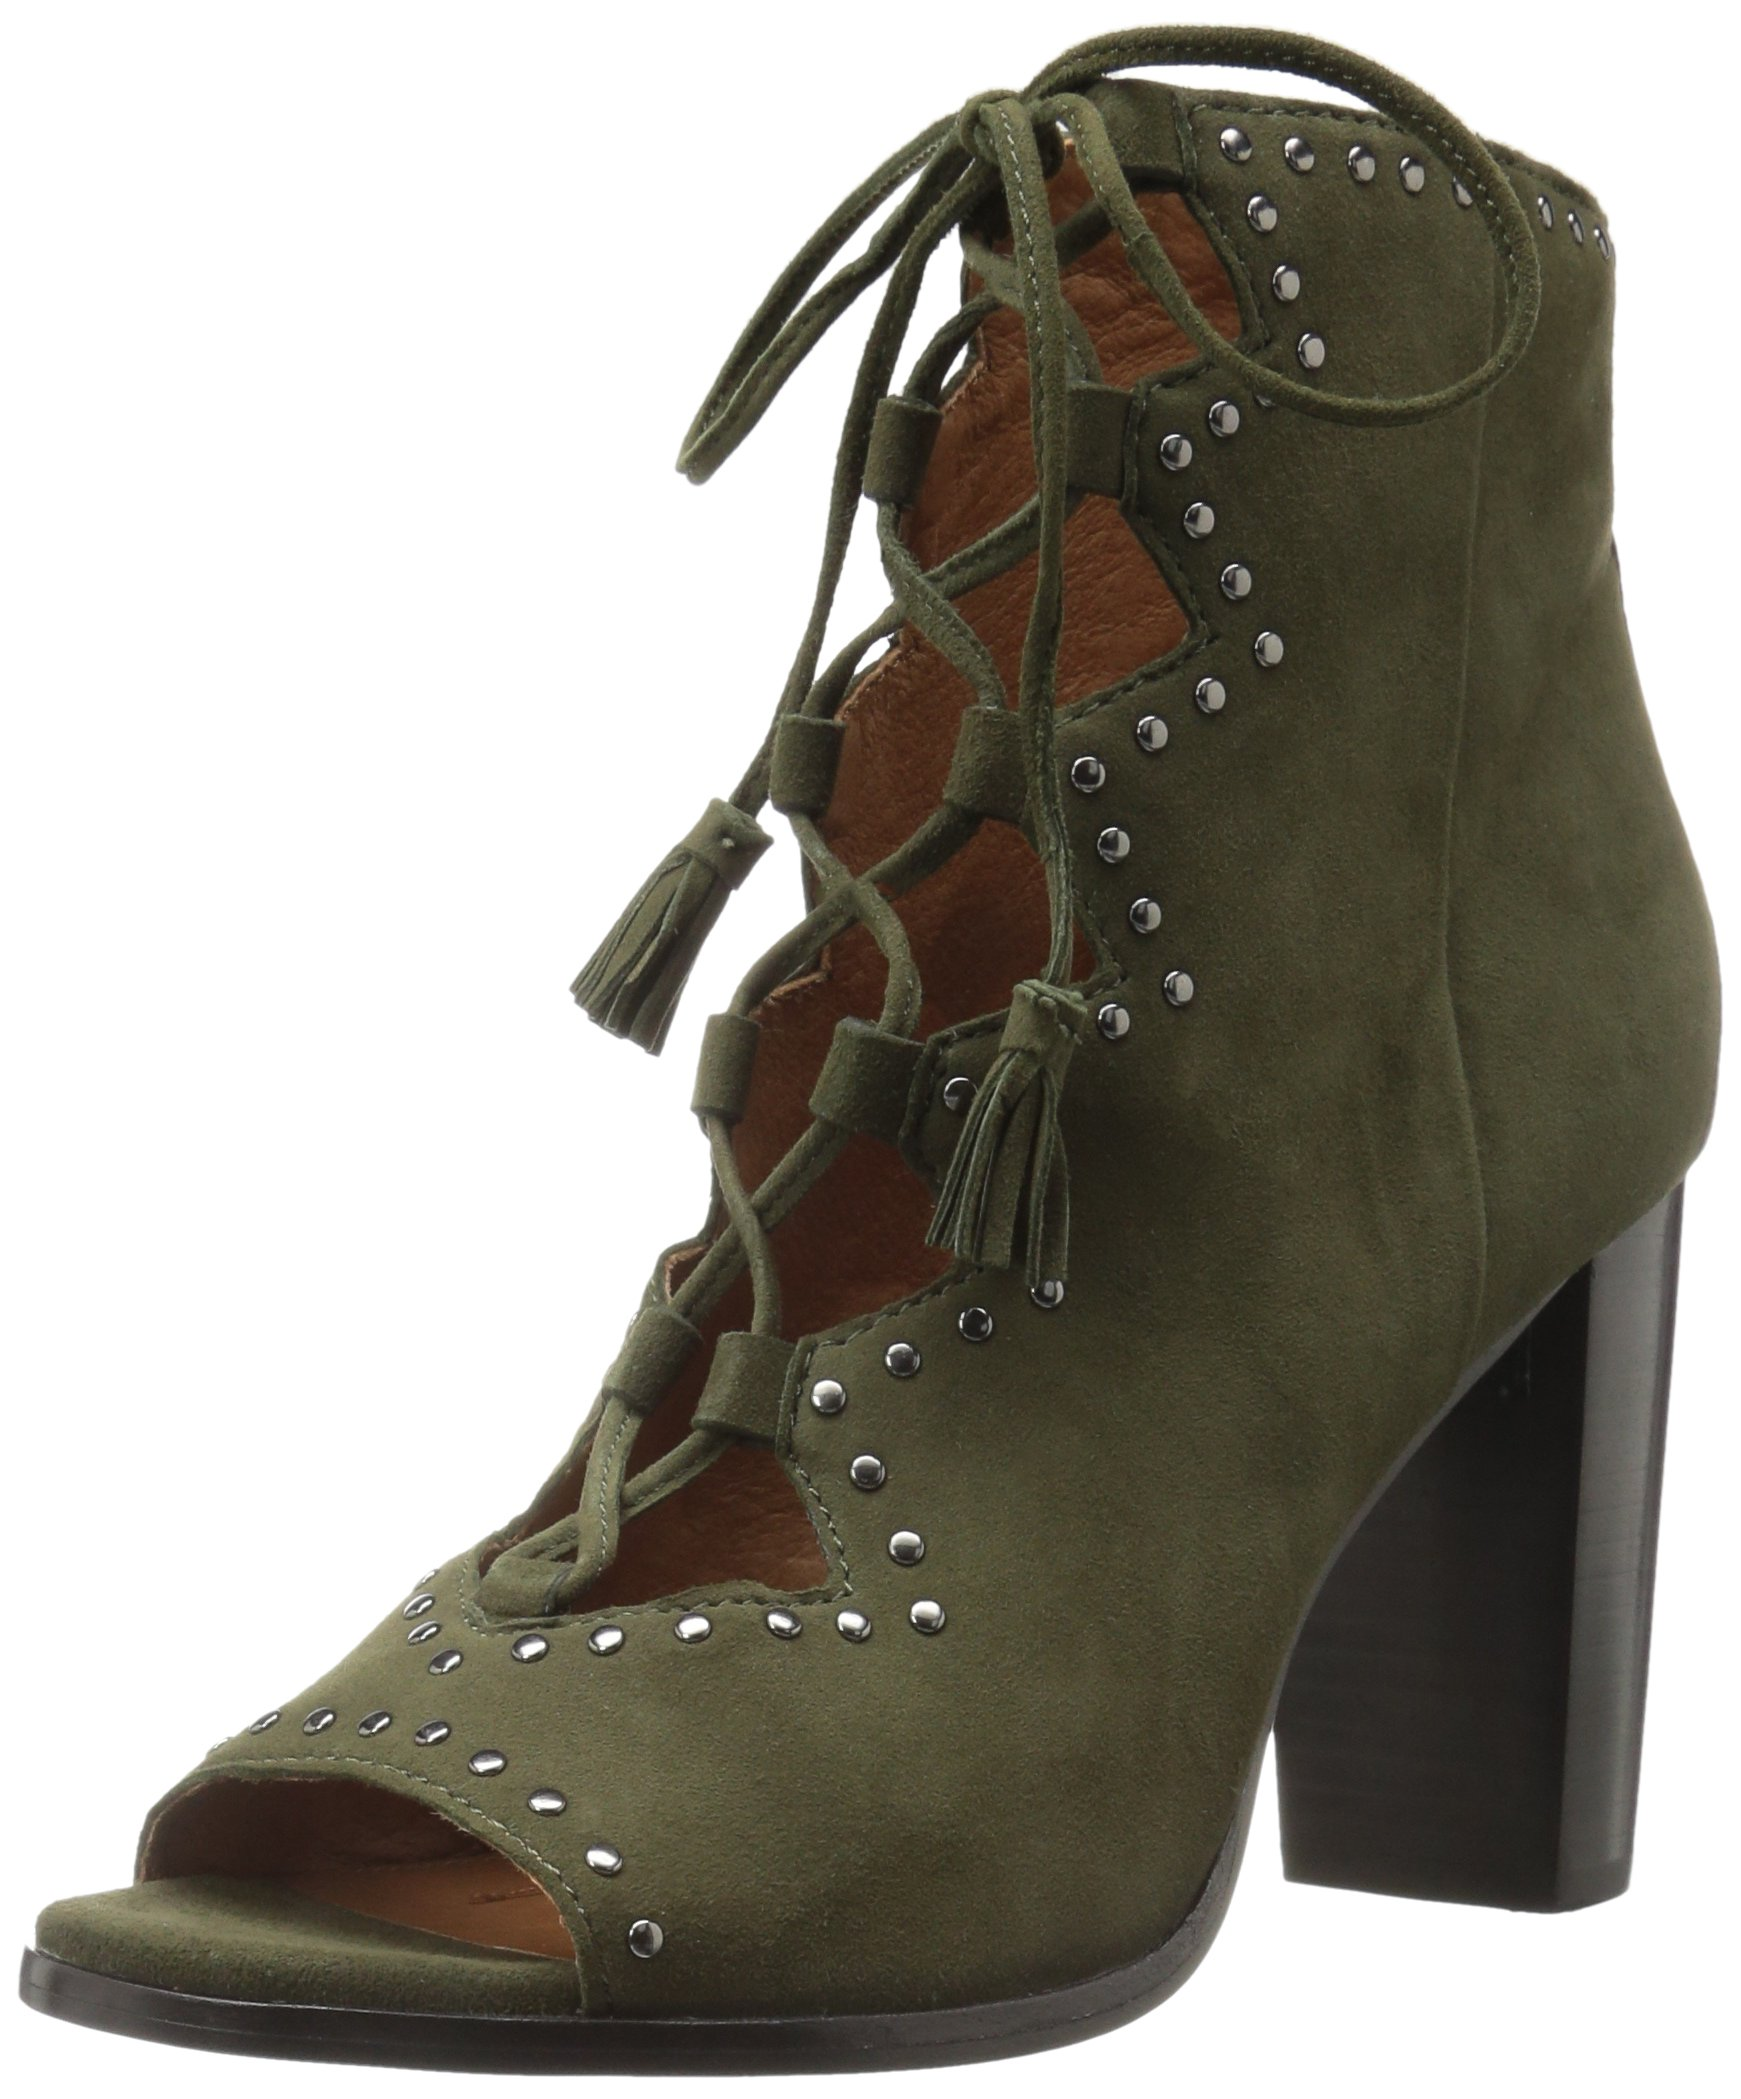 FRYE Women's Gabby Ghillie Stud Boot, Forest Suede, 8 M US